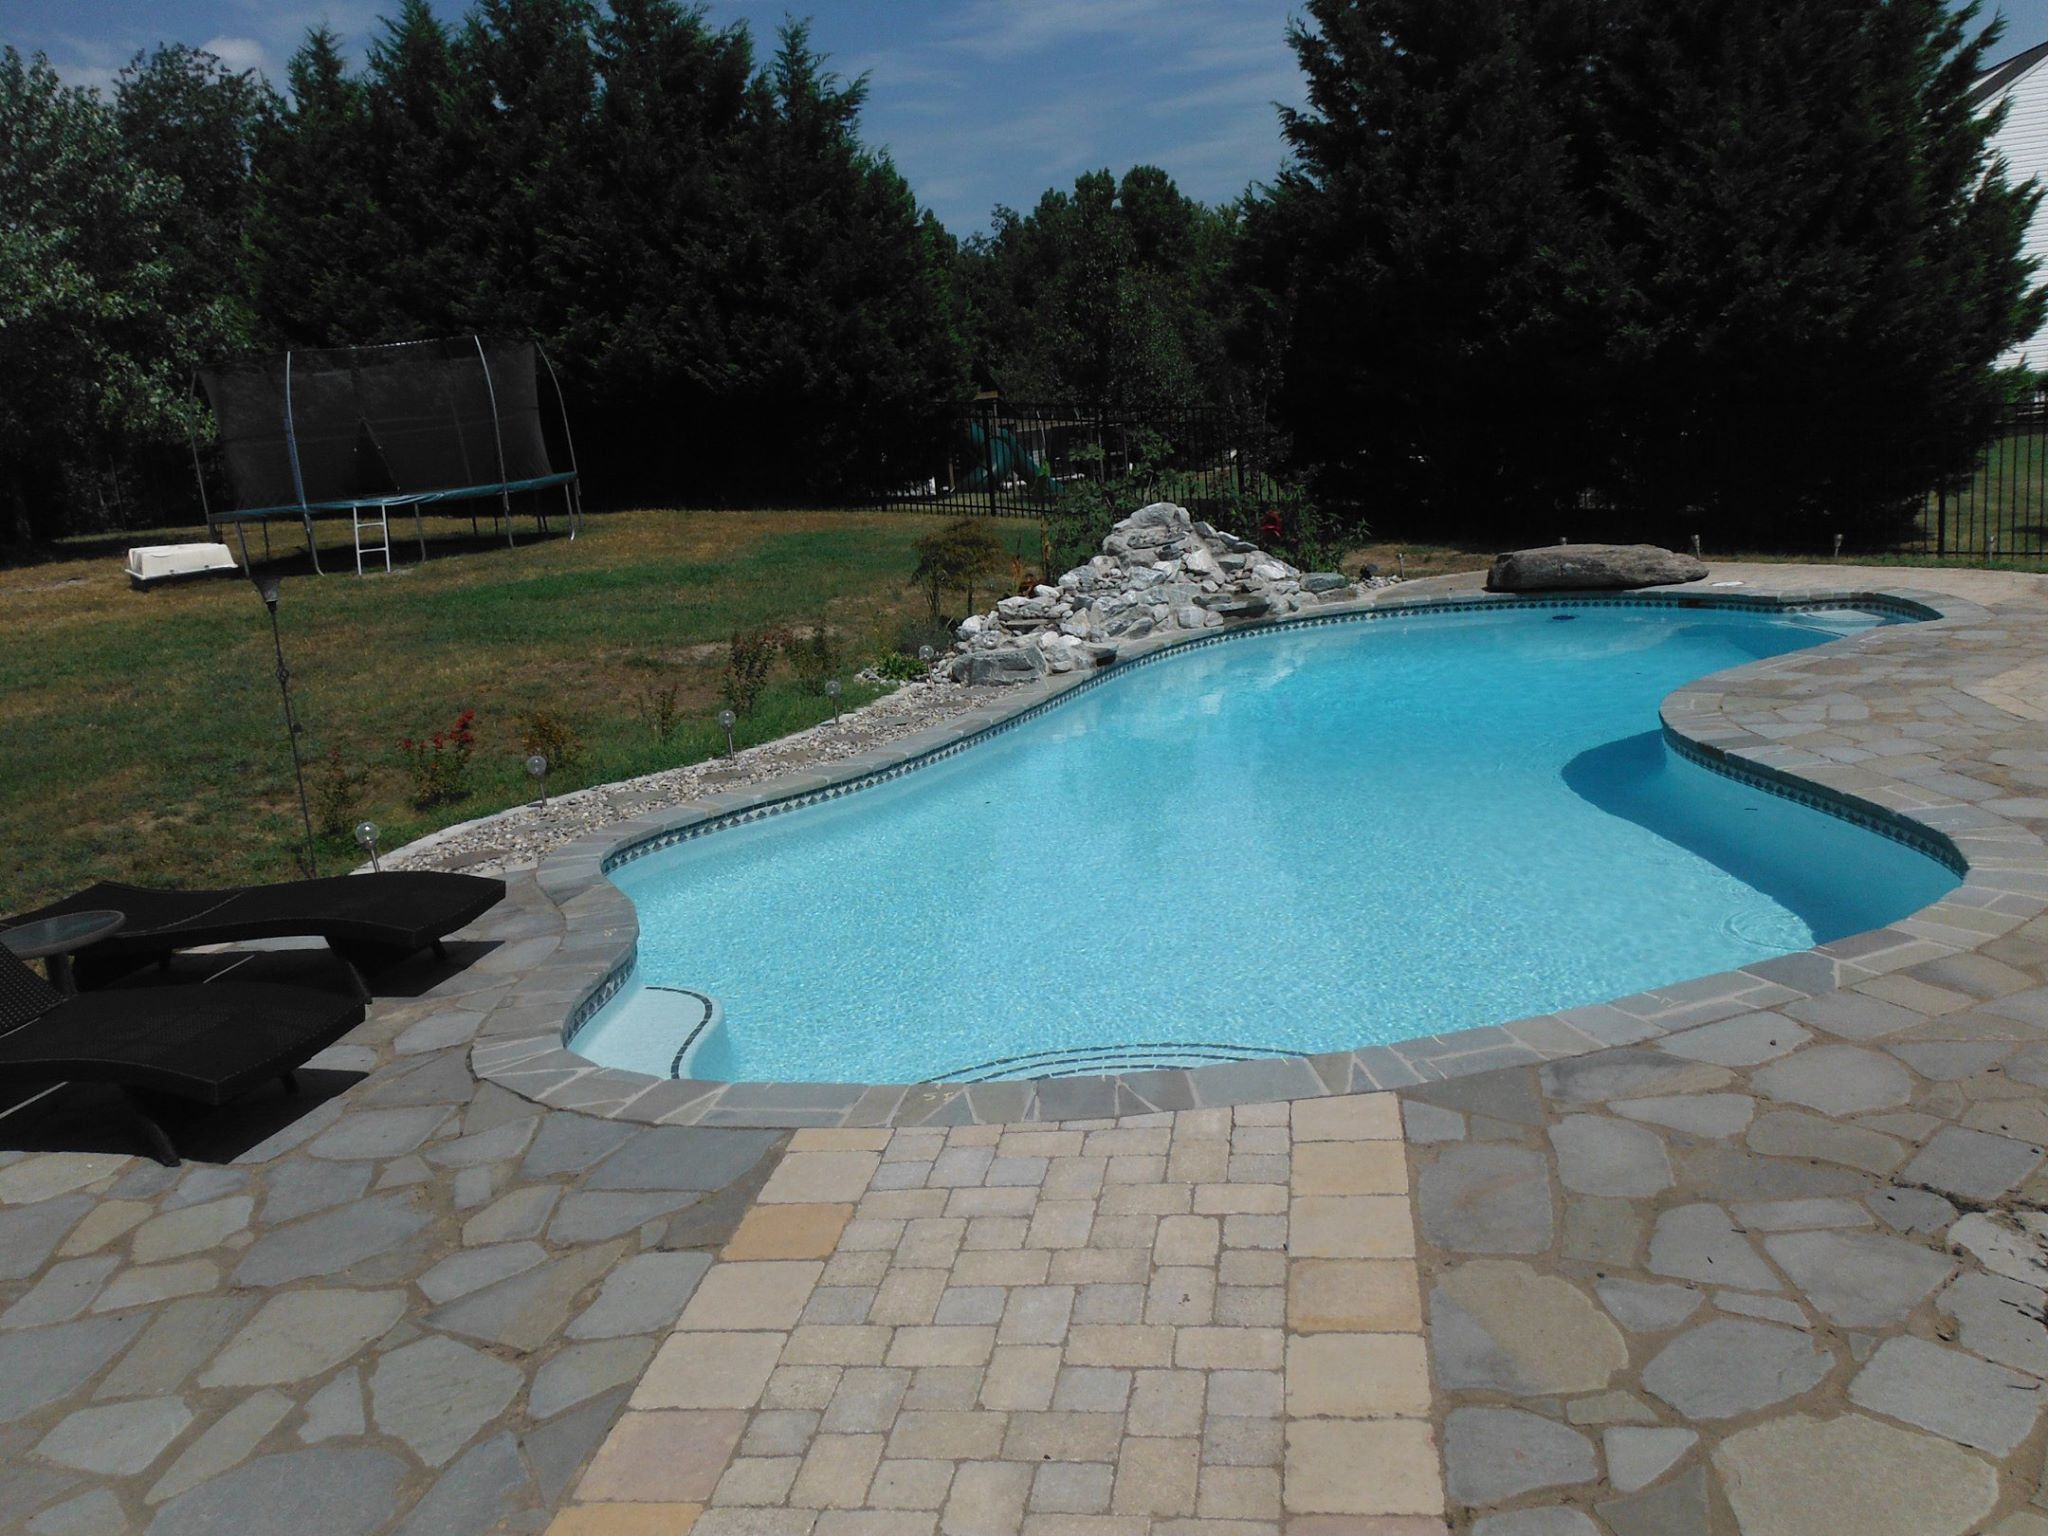 If you've ever wanted to have the fun and relaxation of a day at the pool without the hassle of packing up the car and dealing with the crowds, Leisure Contracting, LLC is the place for you! The fiberglass pool installation experts at Leisure Contracting have over 20 years of expertise in the industry – simply put, no one knows backyard pools better than they do! One of the hallmarks of their success is their timeliness and their dedication to customer service at every step of the pool installation process. changing your pool area from a watery hole in the ground to a true backyard oasis! Contact Leisure Contracting, LLC today for free estimates! 4102422264 support@leisurecontracting.com http://www.leisurecontracting.com/